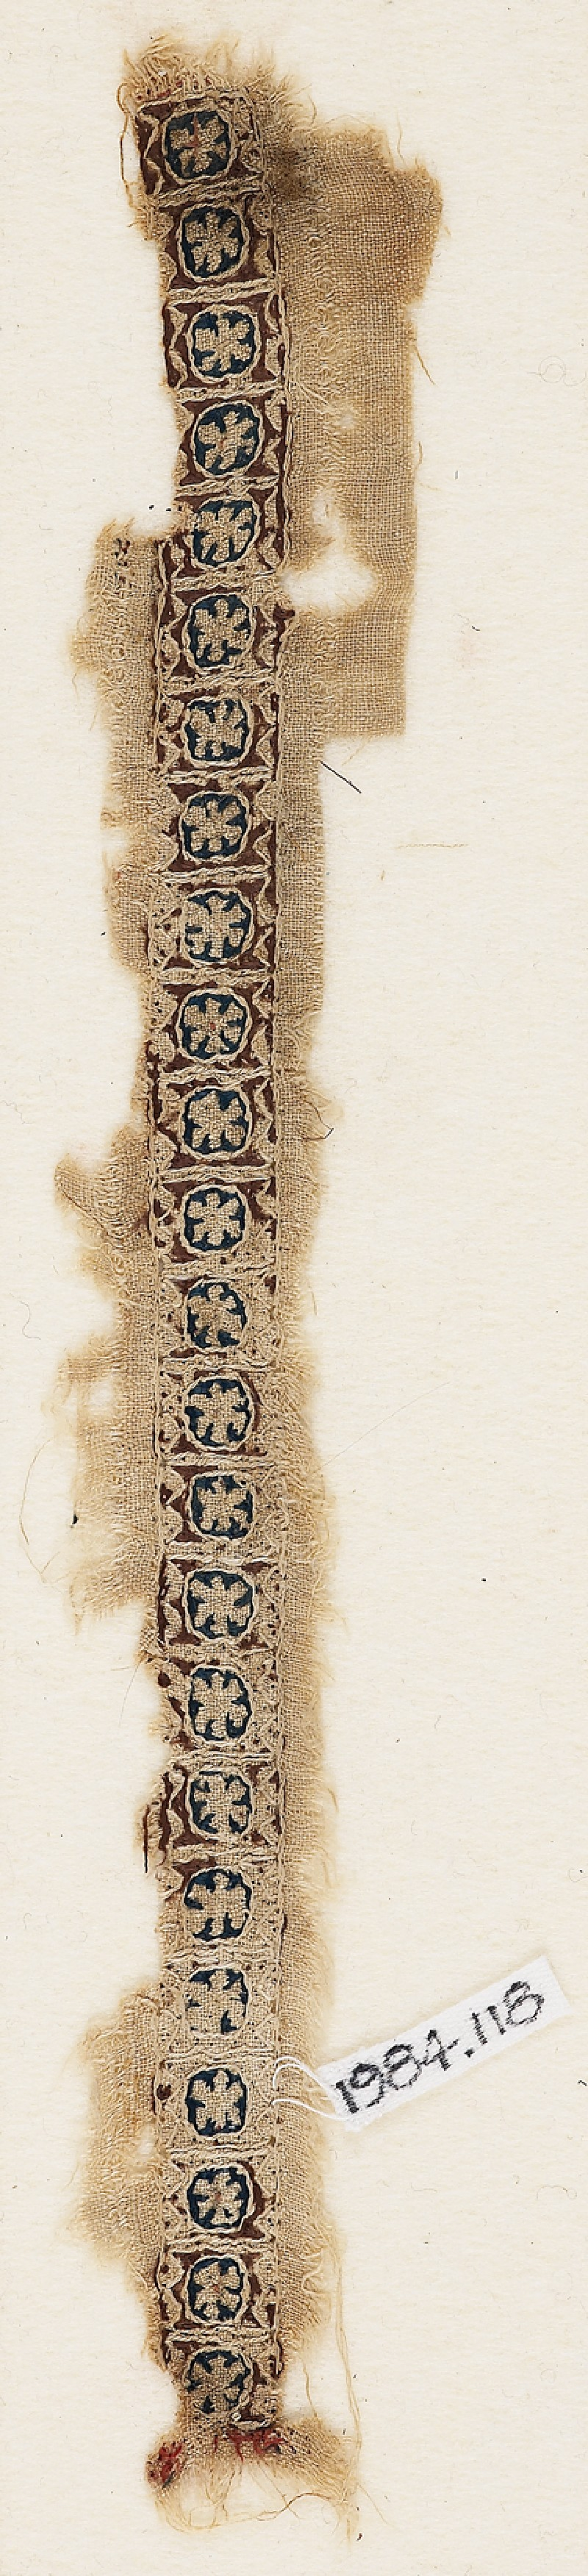 Textile fragment with circles and rosettes